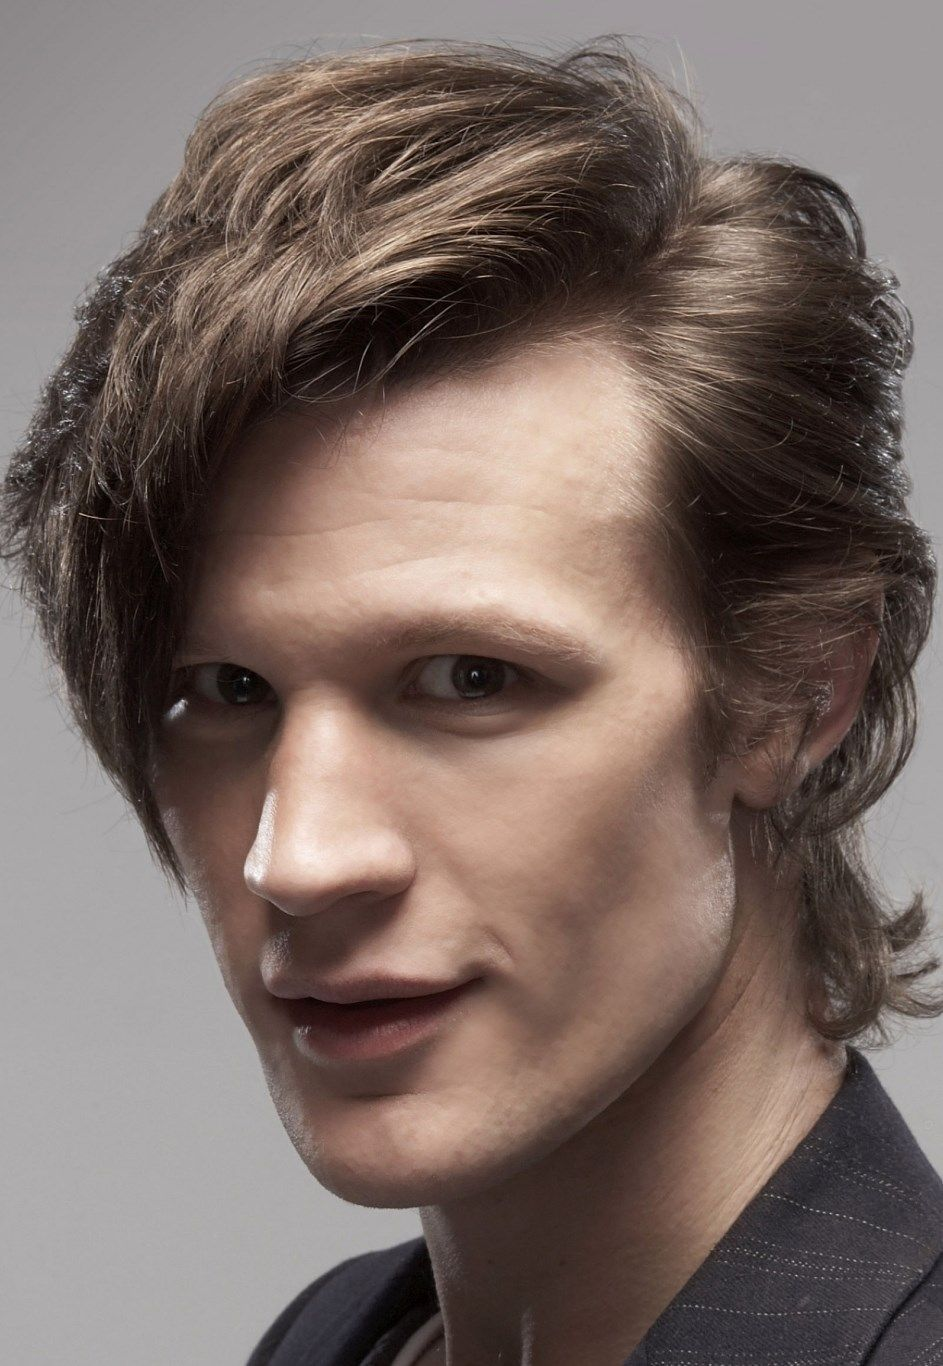 Matt Smith❤️ yes, David is my favorite and has worked his Scottish way into my heart, but I love Matt too!